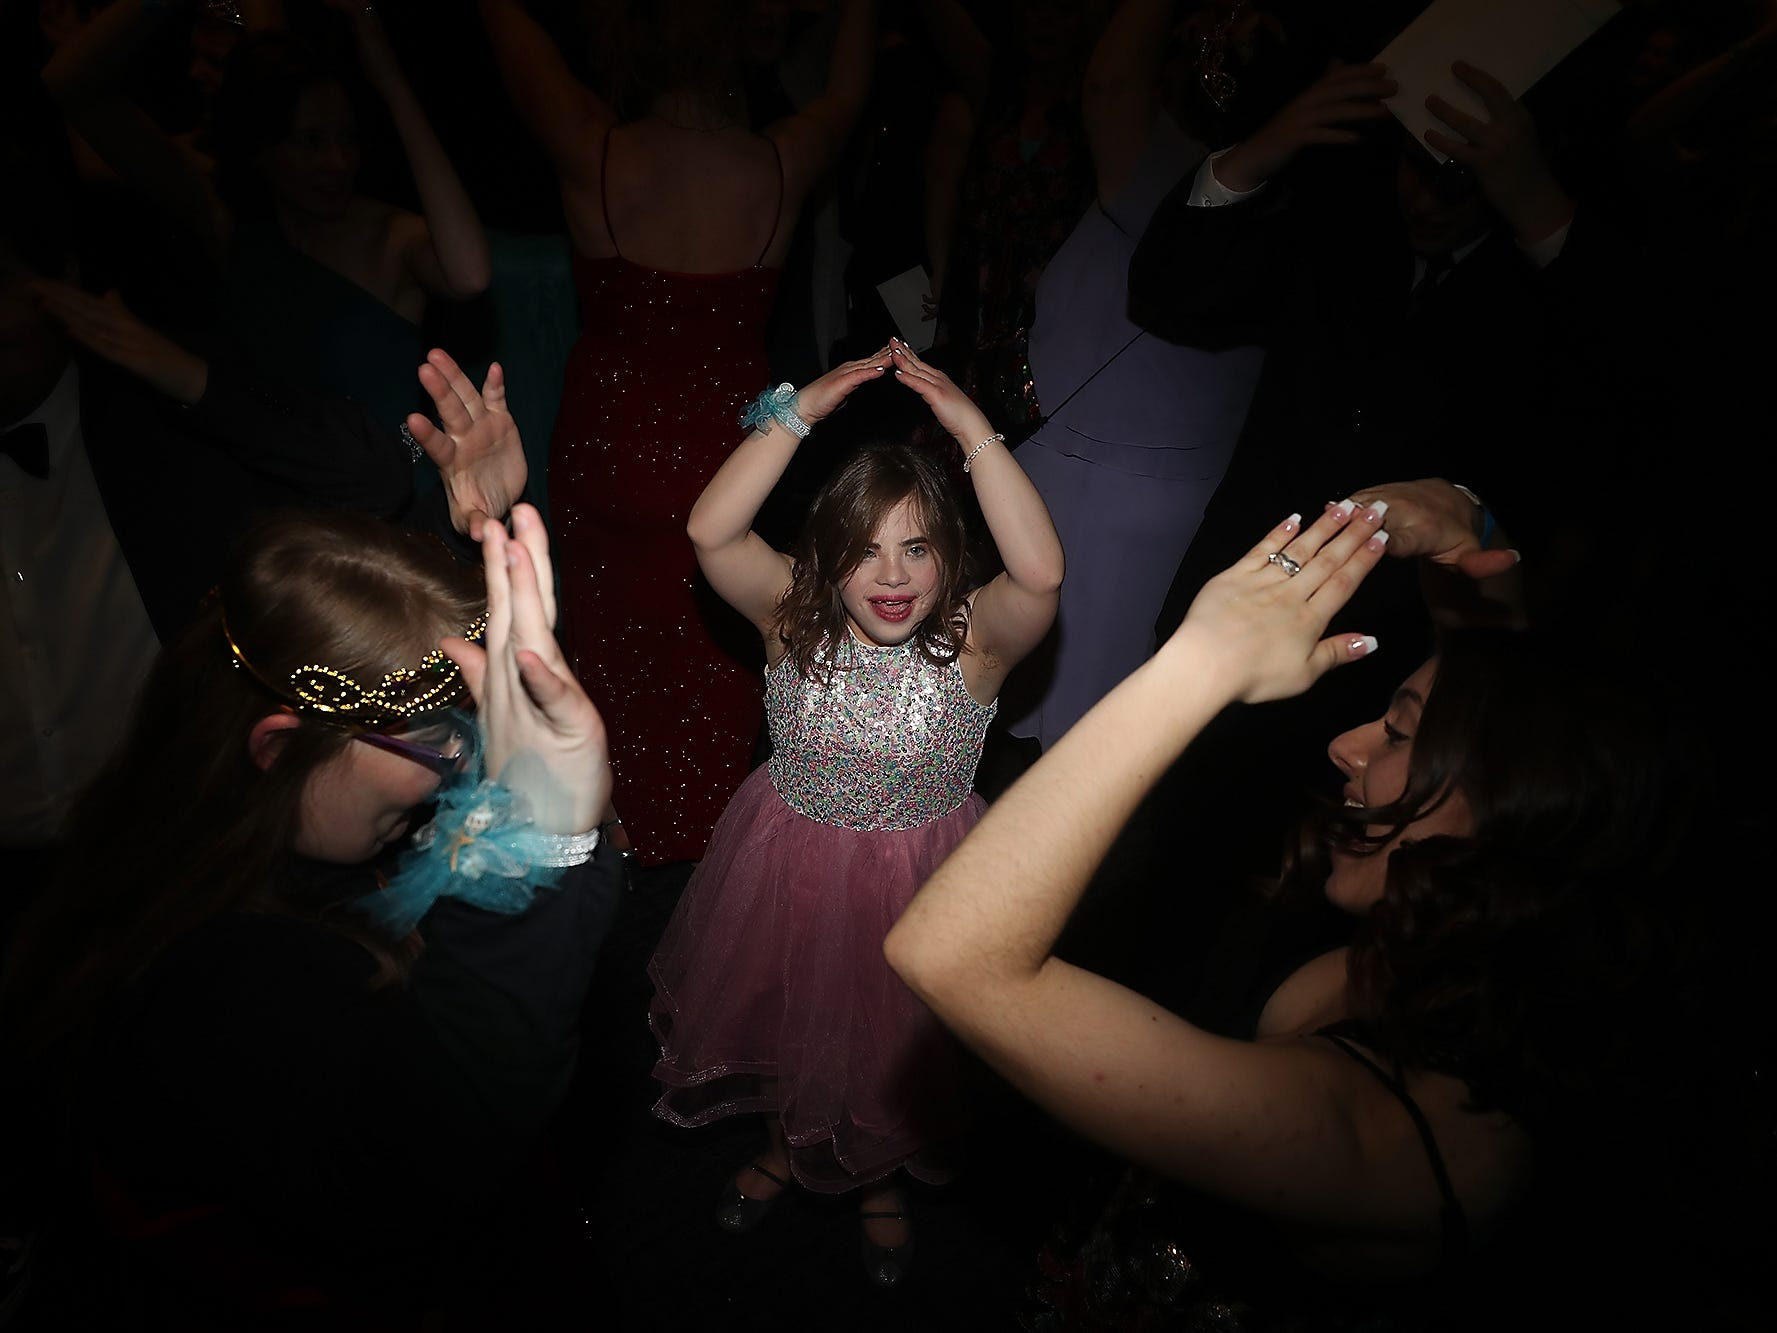 Hannah LaCelle , center, and buddy Sariana Rohlinger, right, dance the YMCA during the Night To Shine at the newlife Training & Events Center in Silverdale on Friday, March 8, 2019.